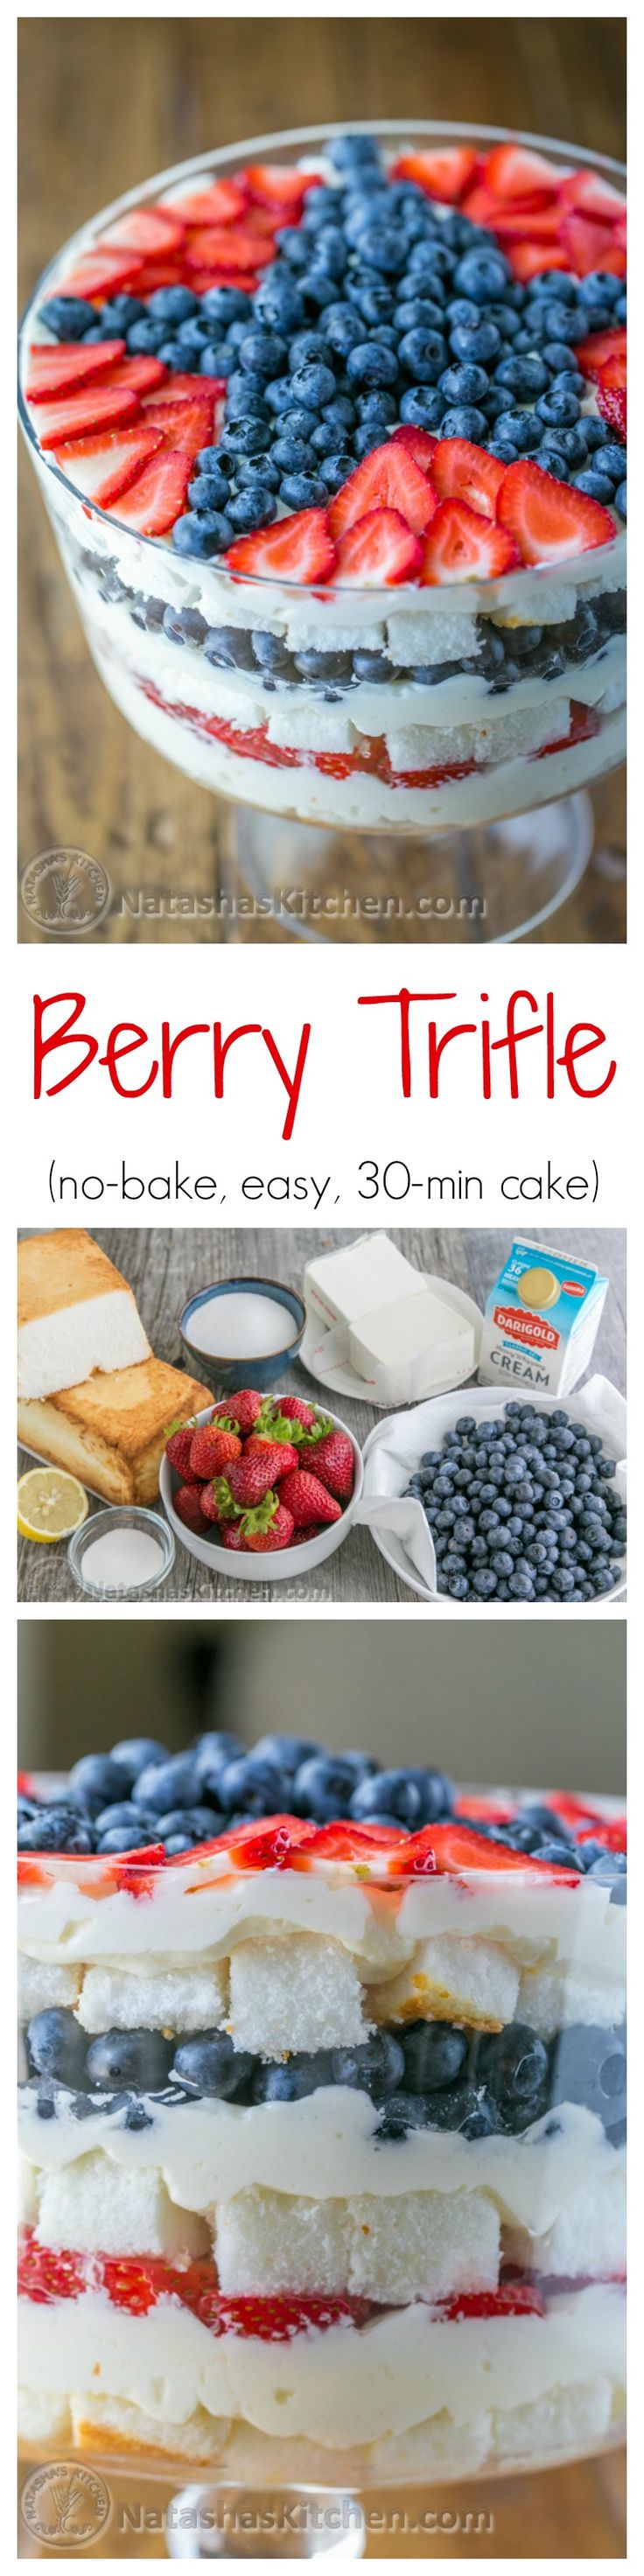 A no-bake berry trifle recipe that takes just 30 min! Loaded with blueberries, strawberries, layers of soft angel food cake and fluffy cream. Delicious!